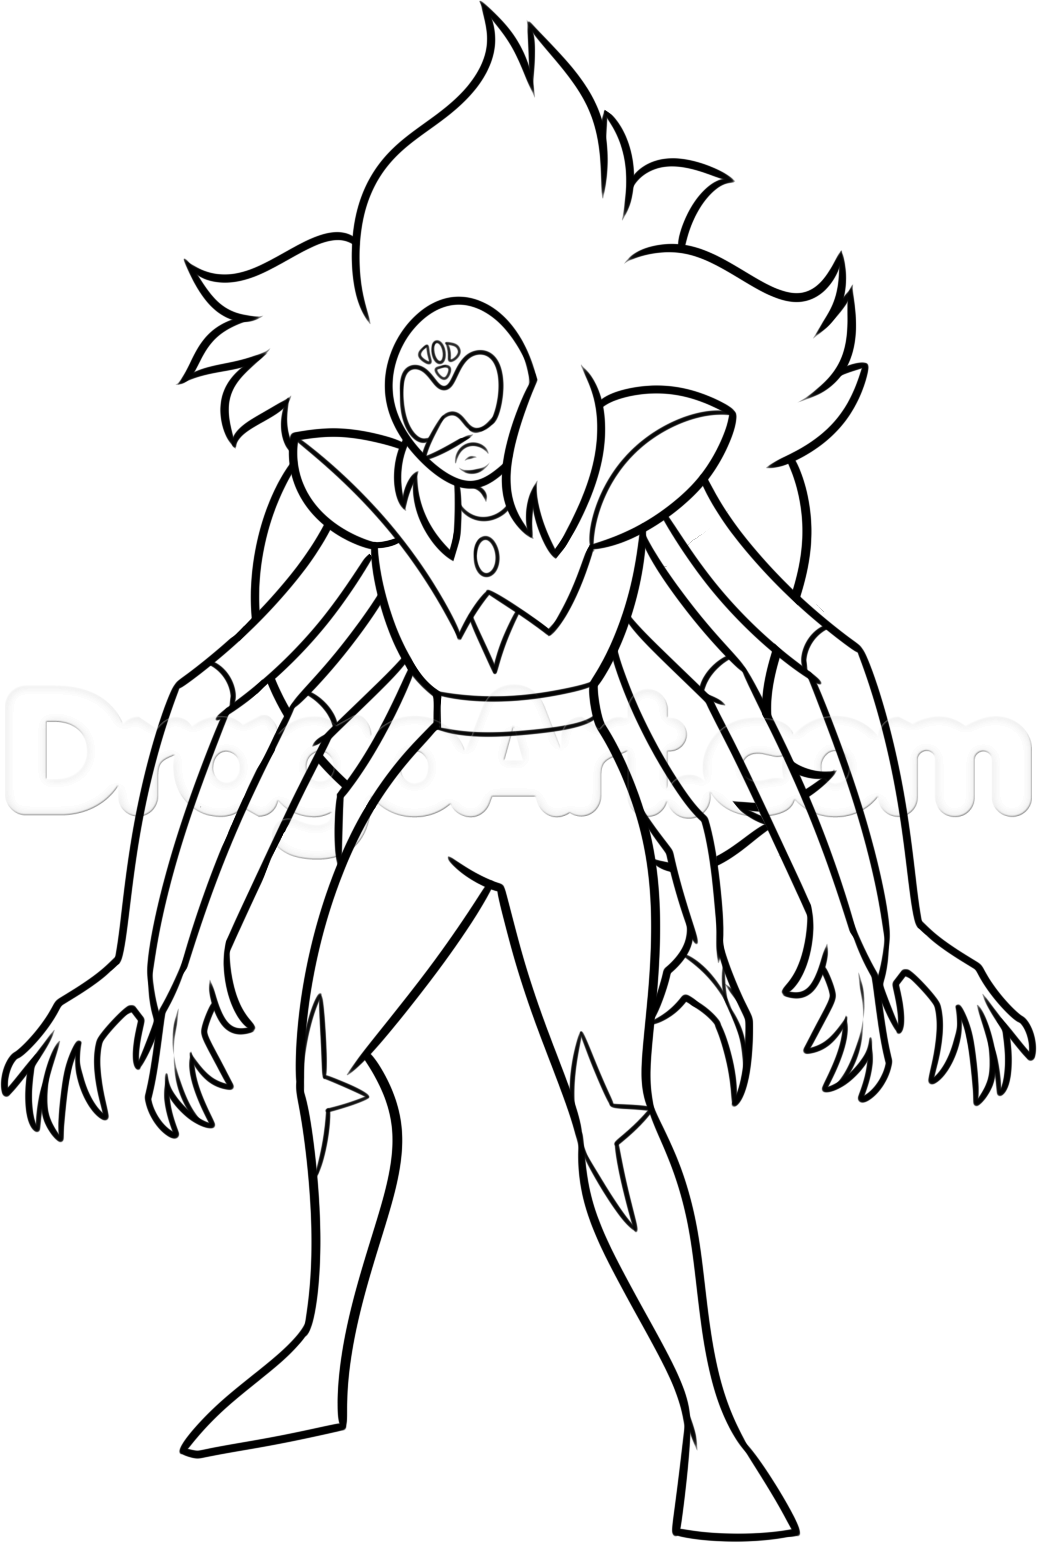 Alexandrite Steven Universe Character Coloring Pages Coloring